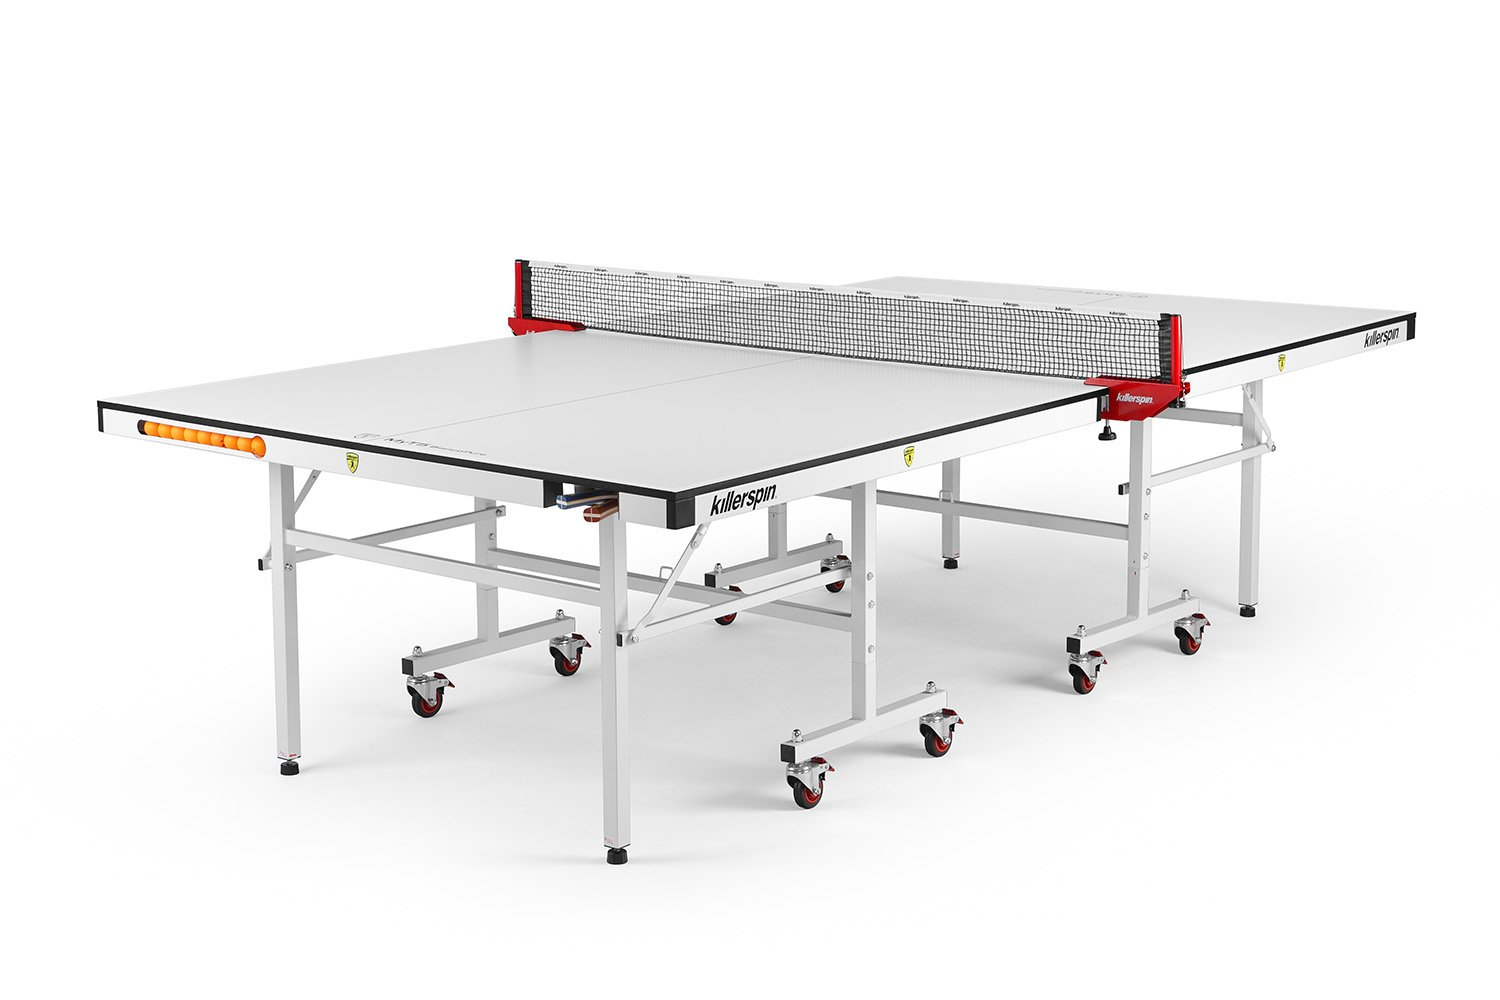 Killerspin MyT5 Bianco Pure Table Tennis Table - White Premium Indoor Ping Pong Table With Tournament-Grade Table Tennis Surface